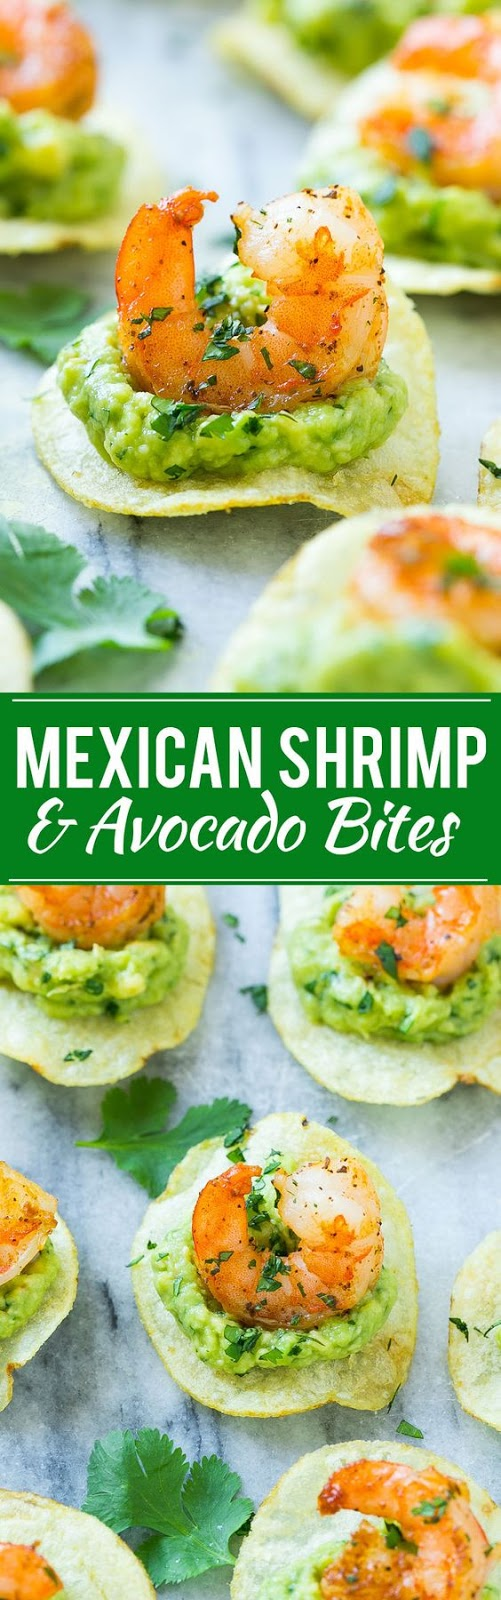 This recipe for Mexican shrimp bites is seared shrimp and guacamole layered onto individual potato chips.